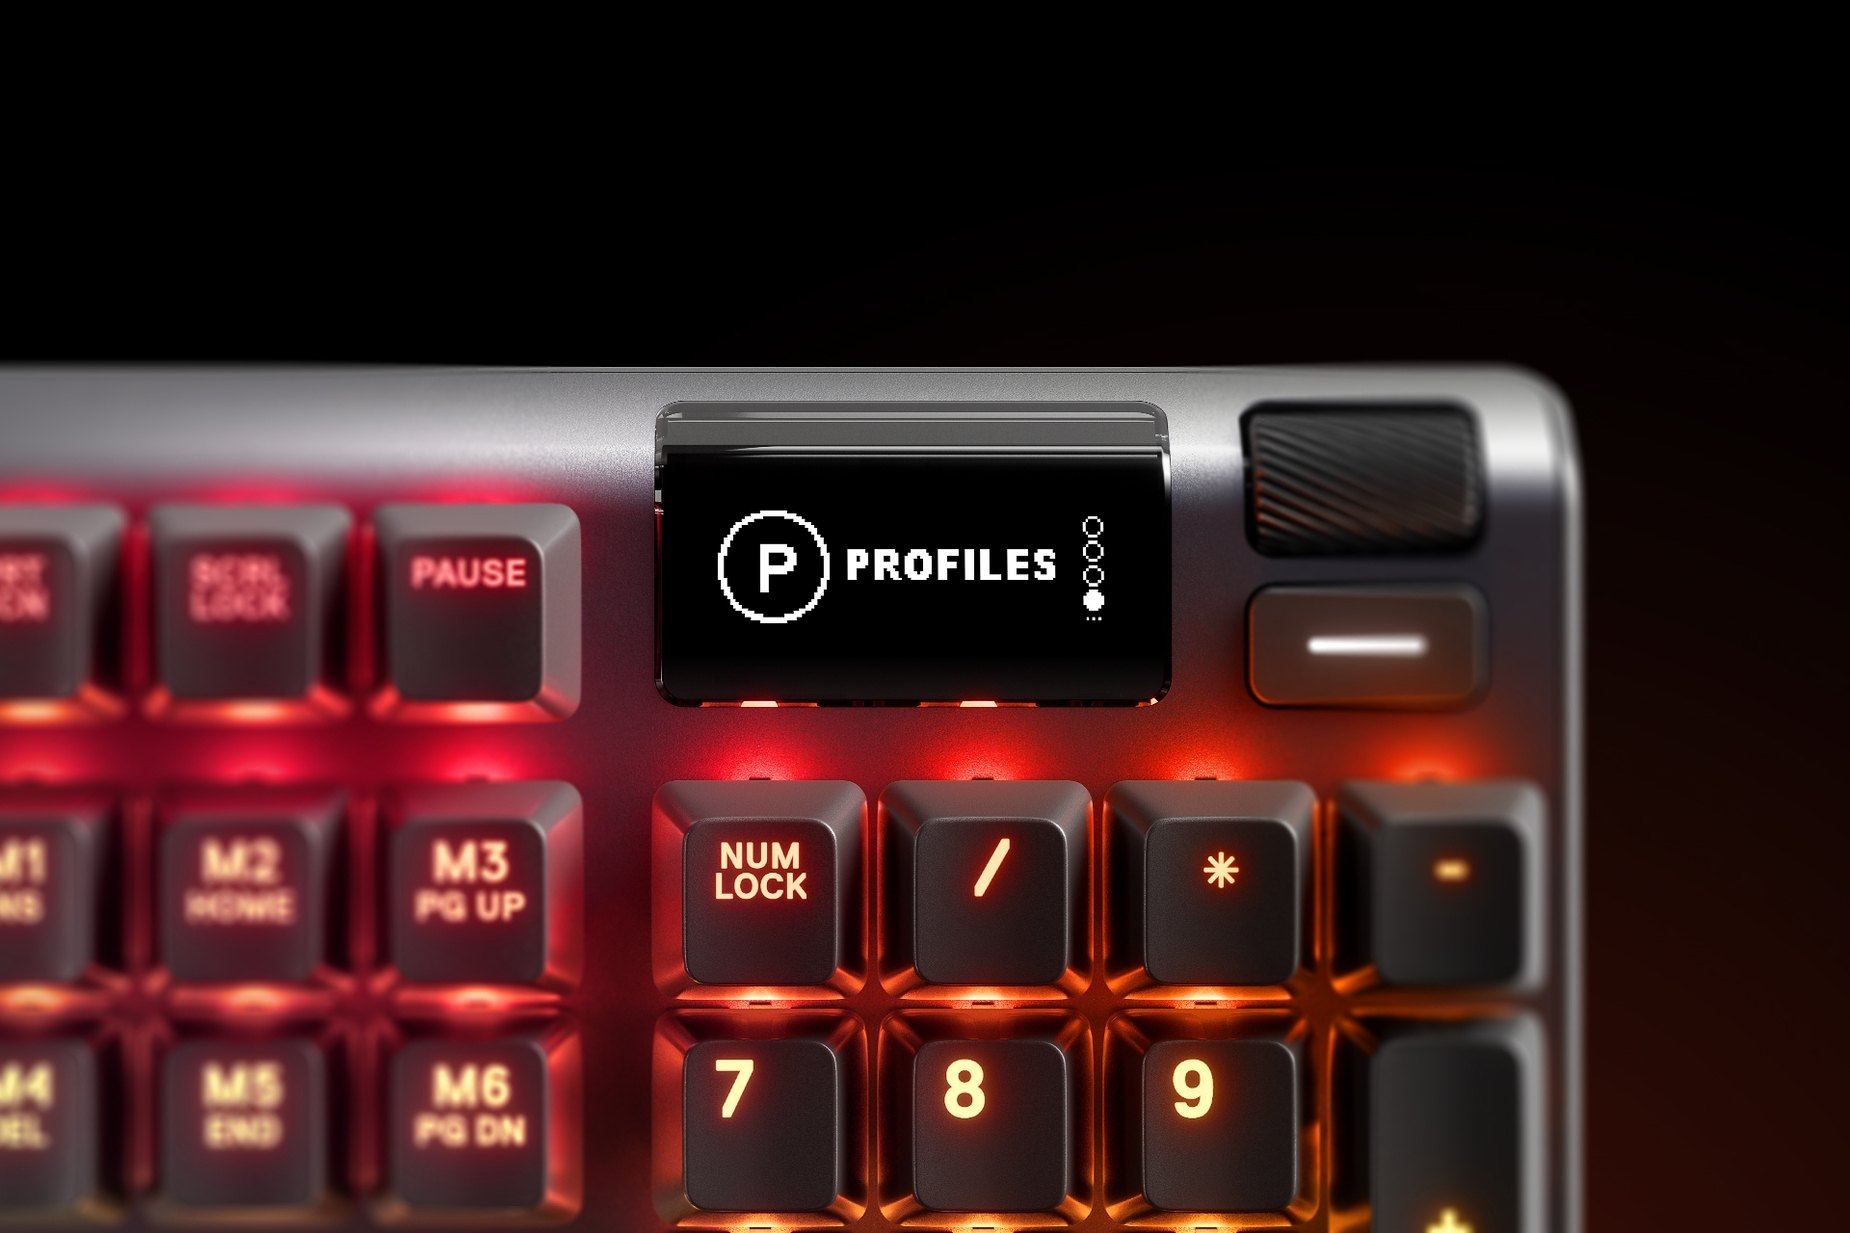 Zoomed in view of the multimedia and settings controls/volume roller on the Nordic - APEX PRO gaming keyboard